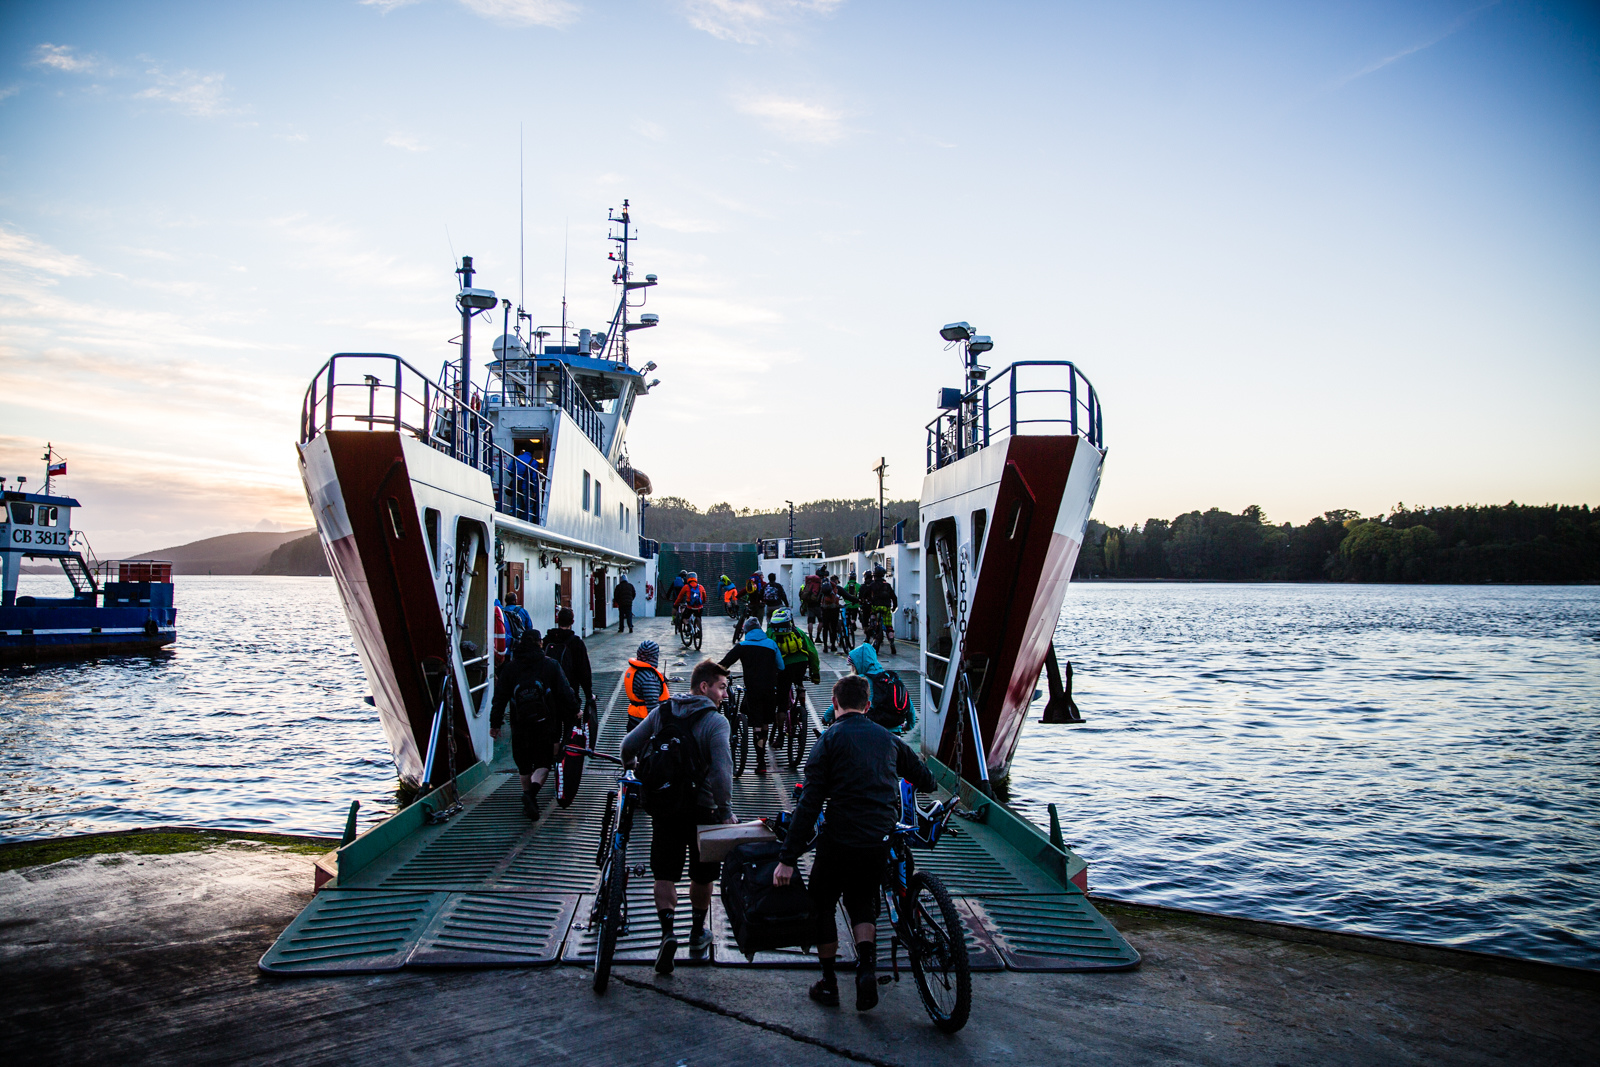 Loading in the ferry between Niebla and Corral. Valdivia. Chile. Photo by Matt Wragg.